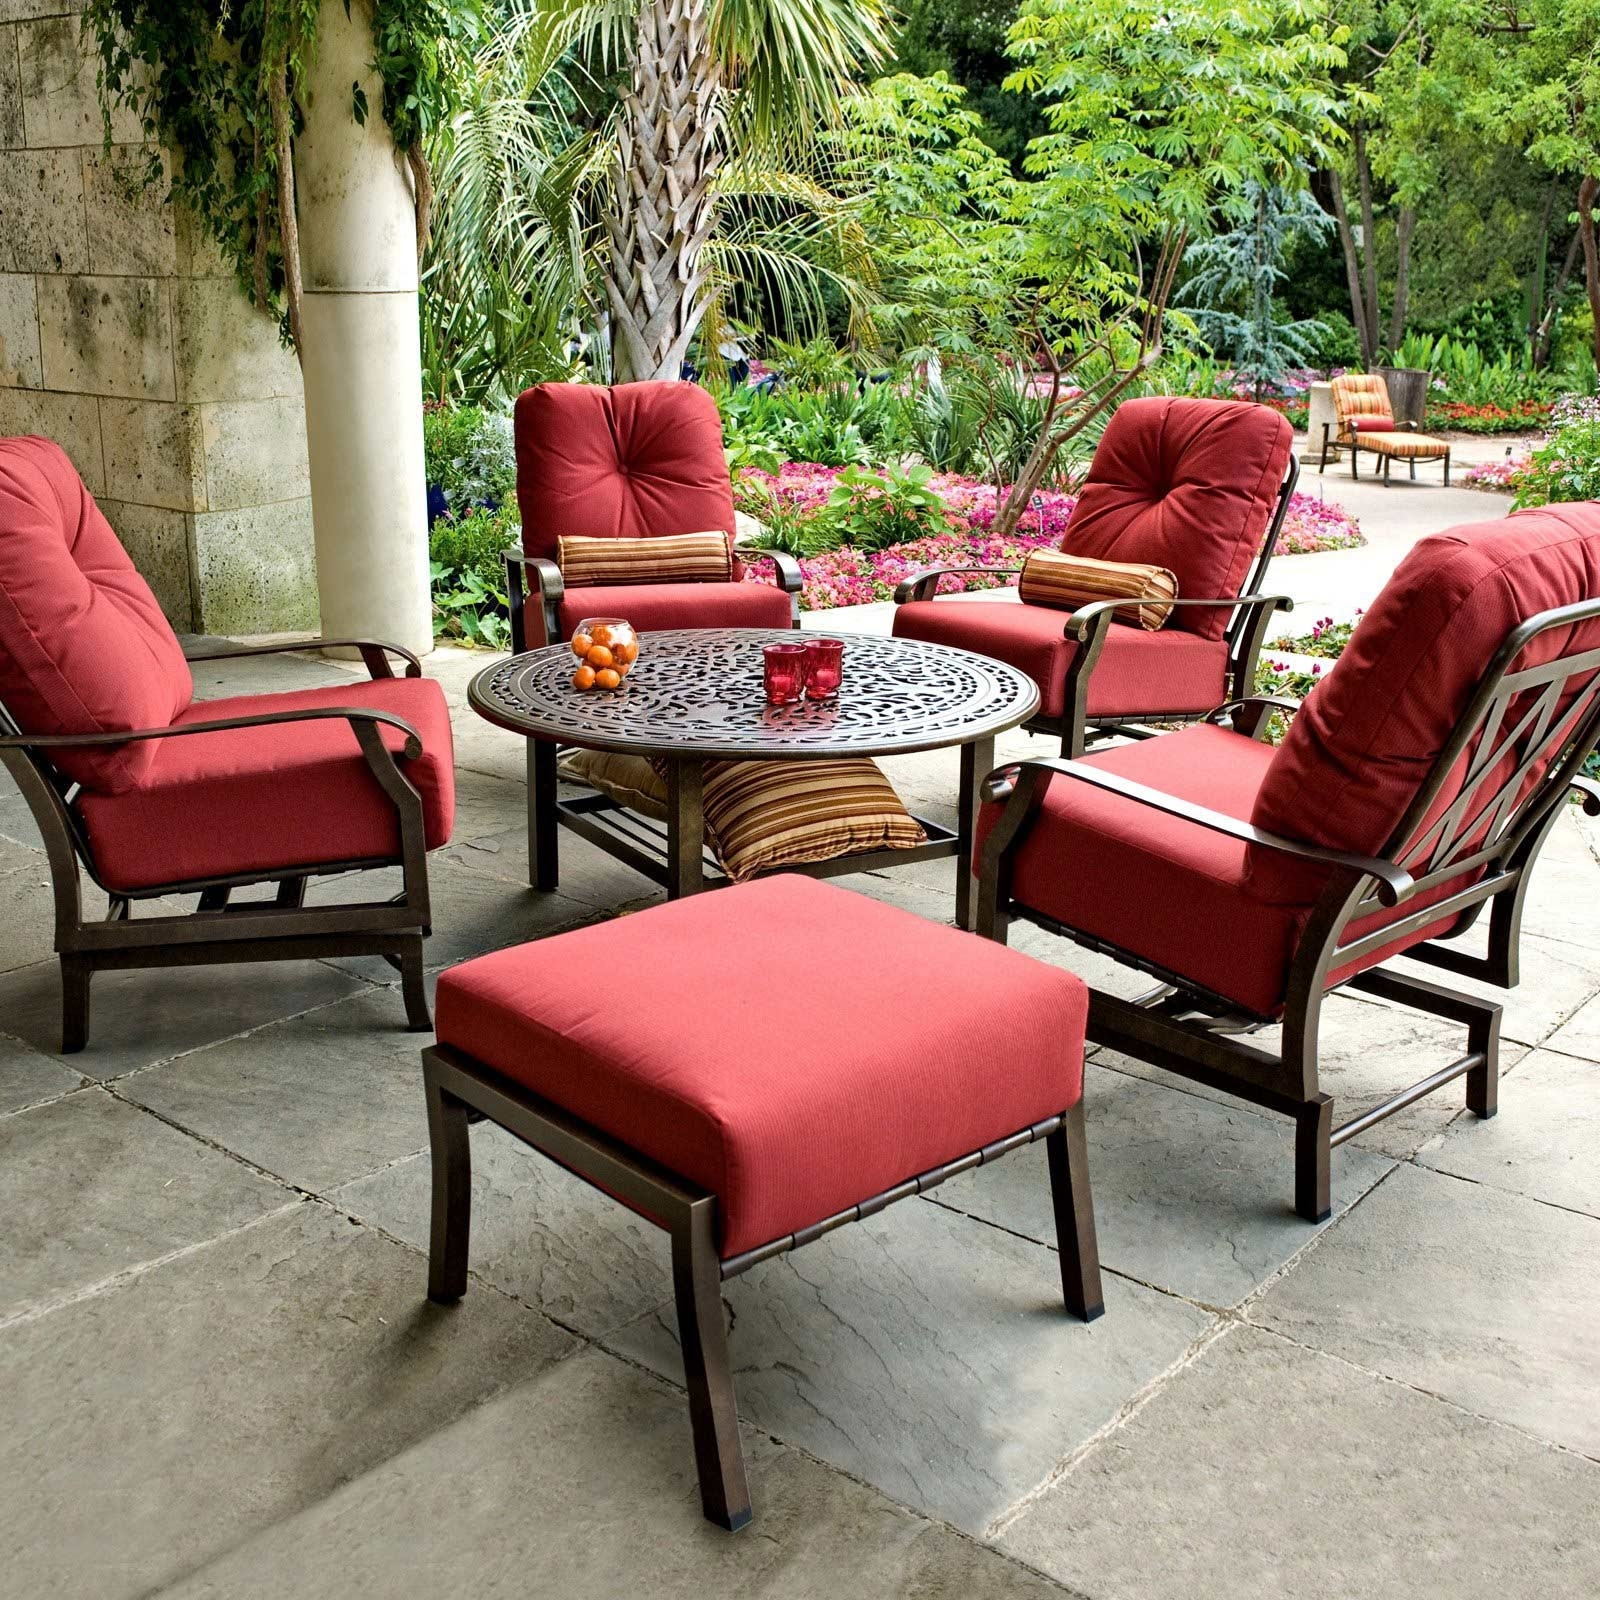 Image of: Dining Room Remarkable Garden Exterior Decor With Comfortable Throughout Red Outdoor Seat Cushions Red Outdoor Seat Cushions Set For Patio